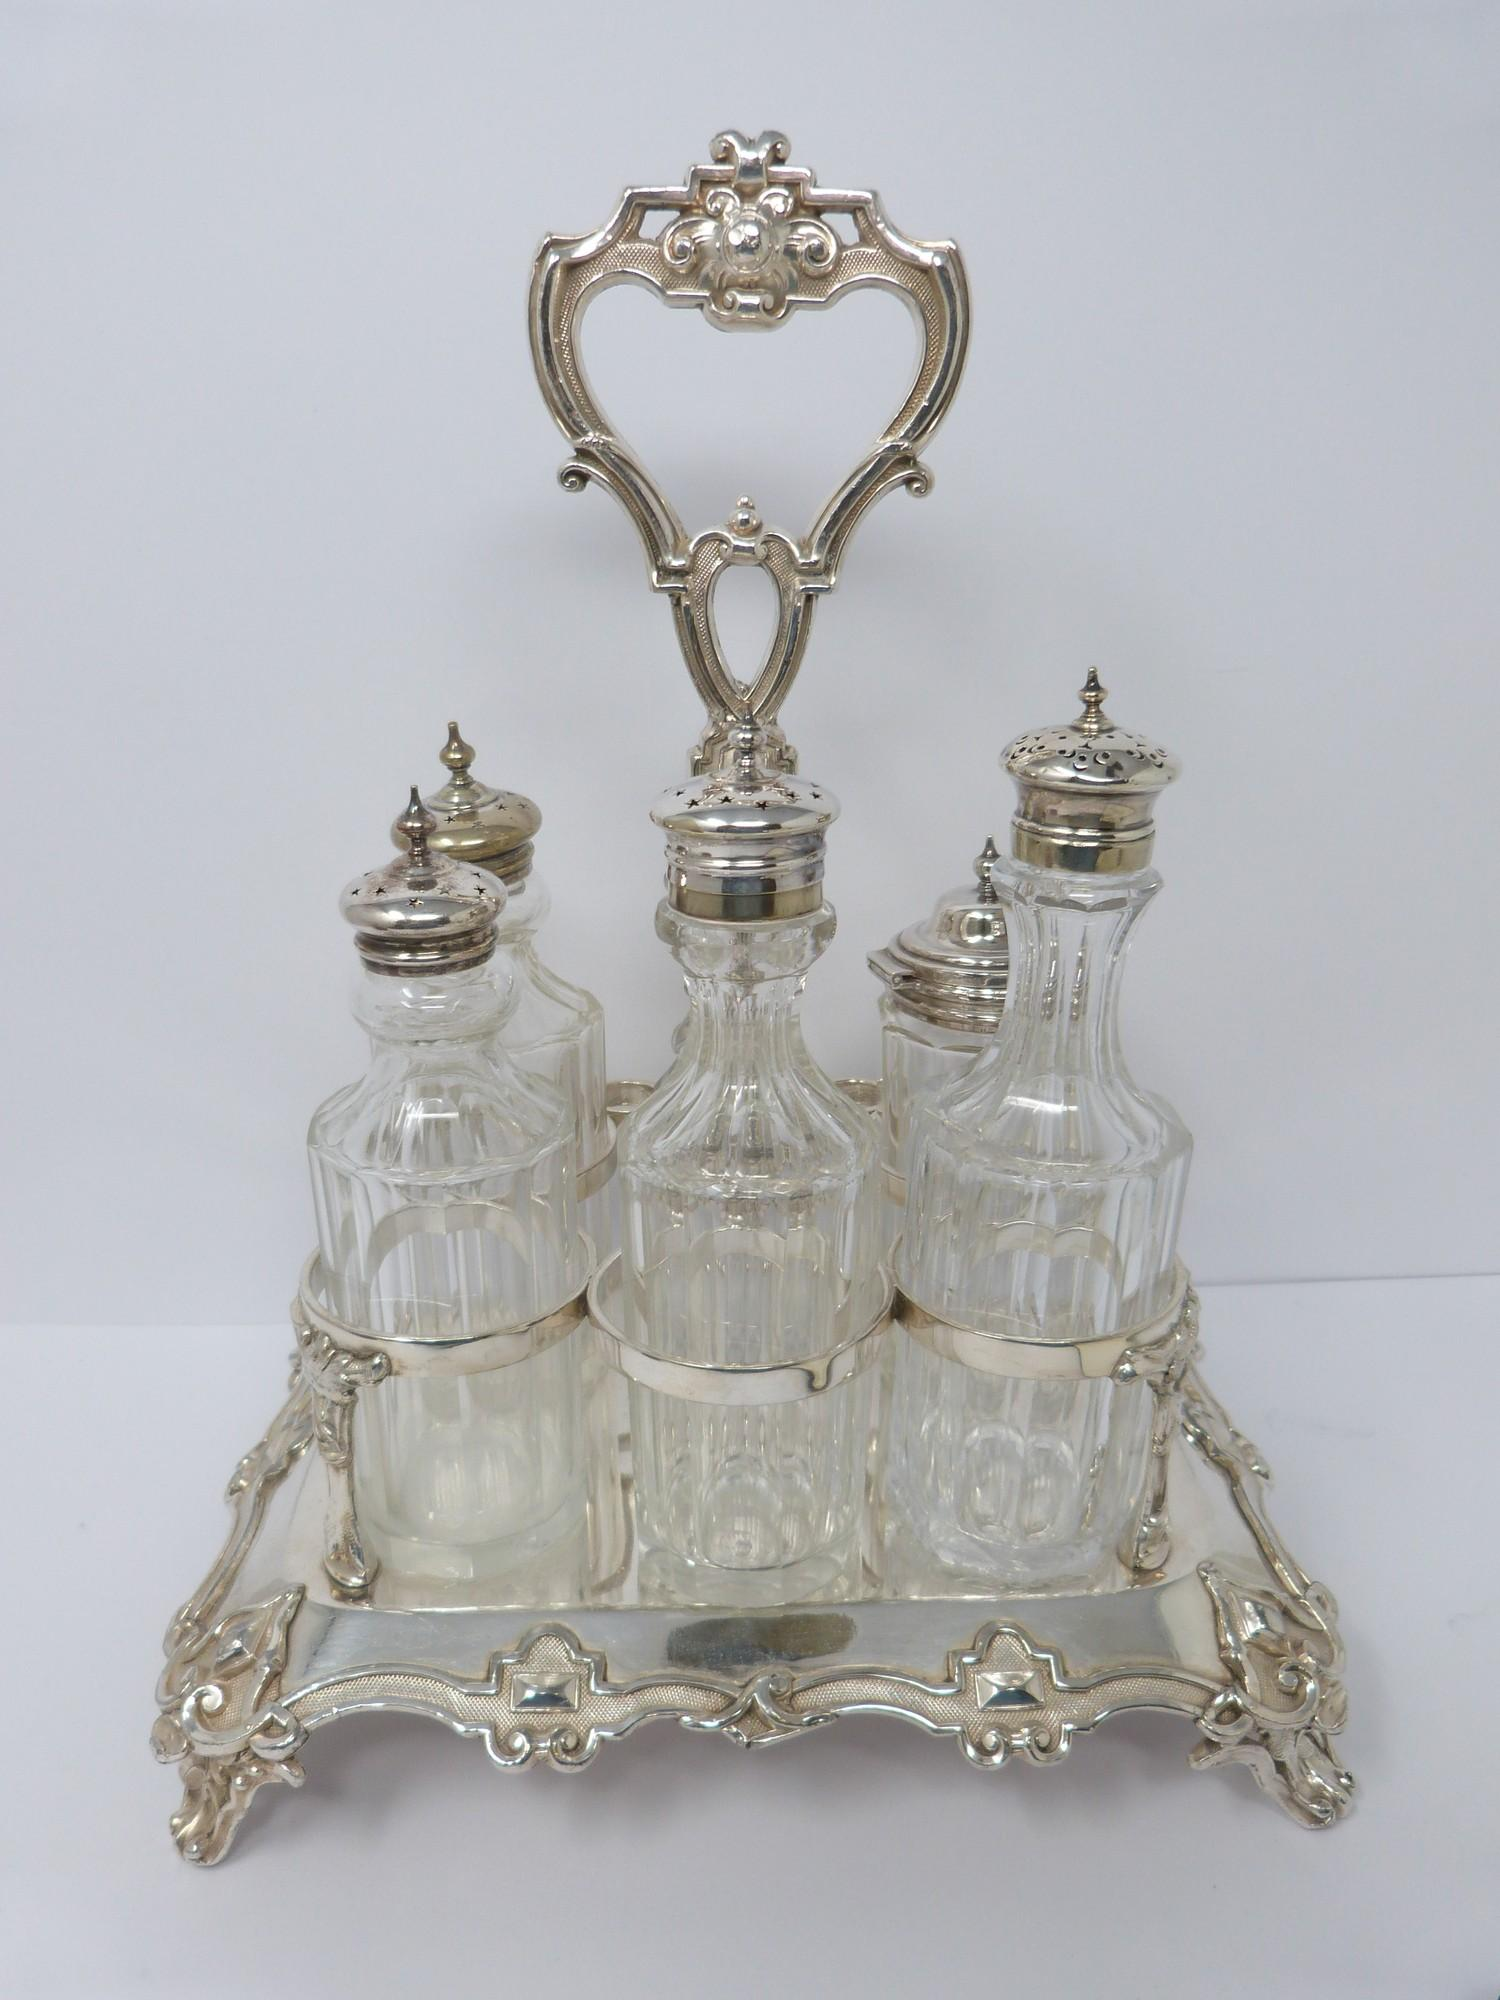 Victorian heavy Sheffield plate and silver plate cut glass cruet set, highly decorated borders,